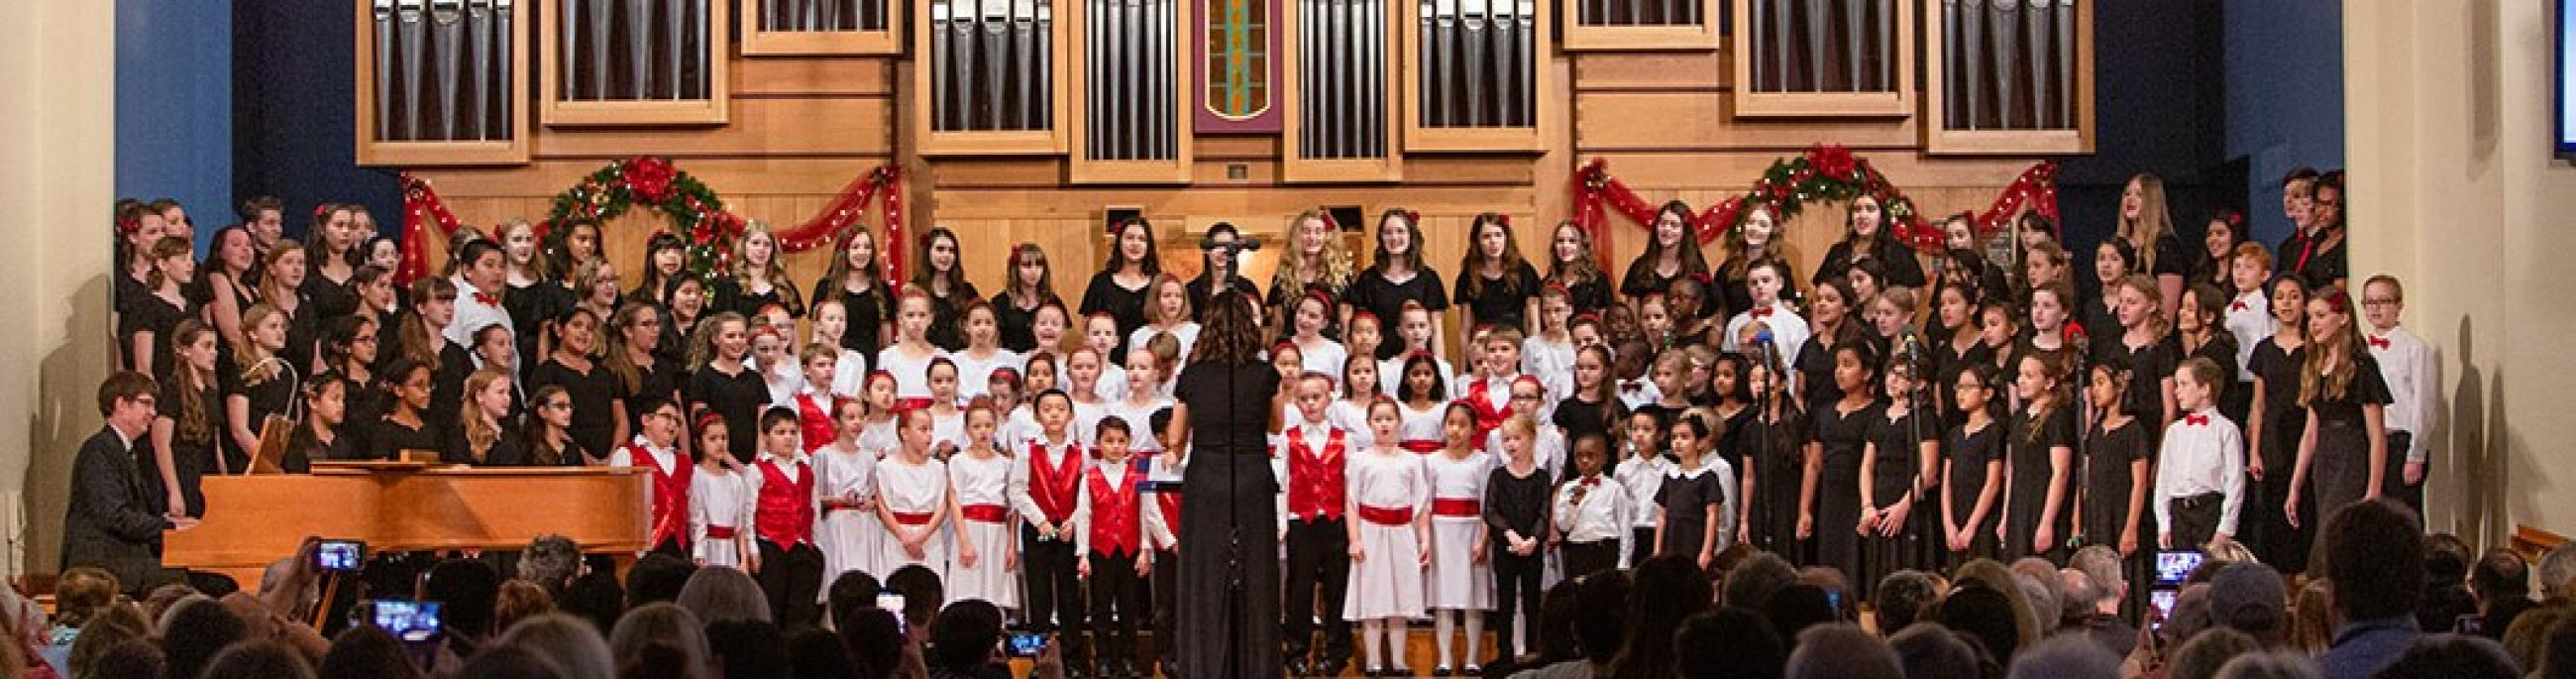 A large group of children stand on risers in front of a church organ as they sing.